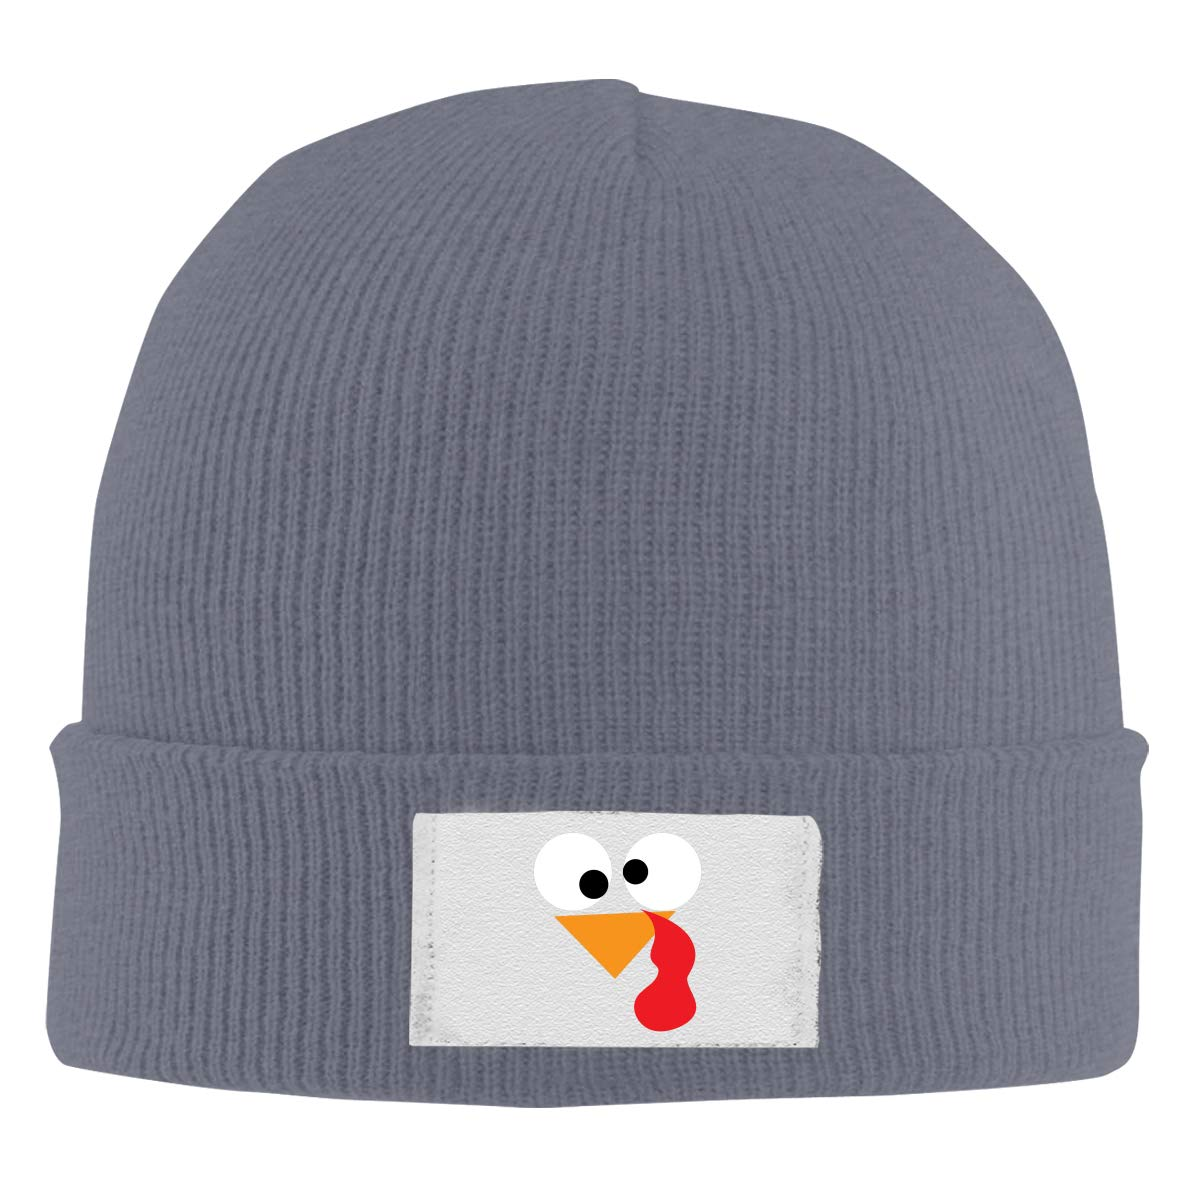 Dunpaiaa Skull Caps Turkey with A Bloody Nose Winter Warm Knit Hats Stretchy Cuff Beanie Hat Black